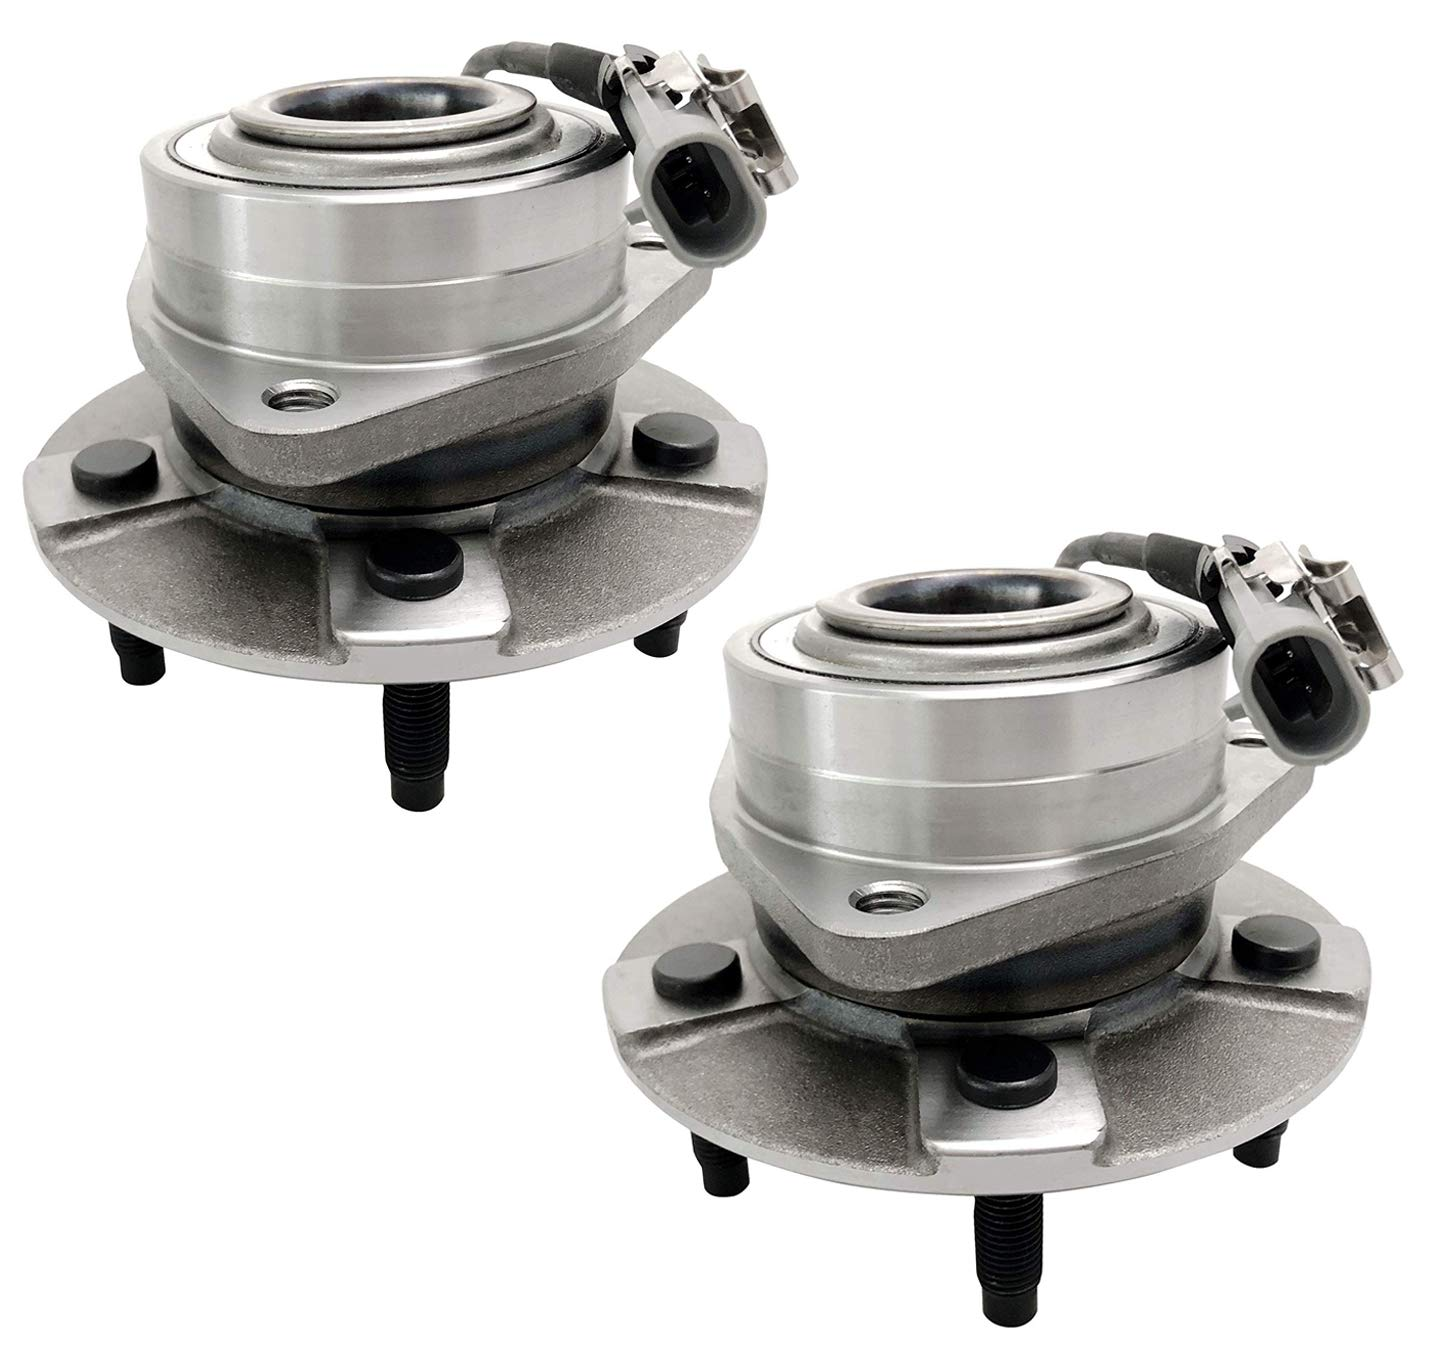 Bodeman - Pair (2) Front Wheel Hub & Bearing Assembly w/ABS for 2005 2006 Chevy Equinox 2006 Pontiac Torrent 2002 2003 2004 2005 2006 2007 Saturn Vue 513189 x2 by Bodeman